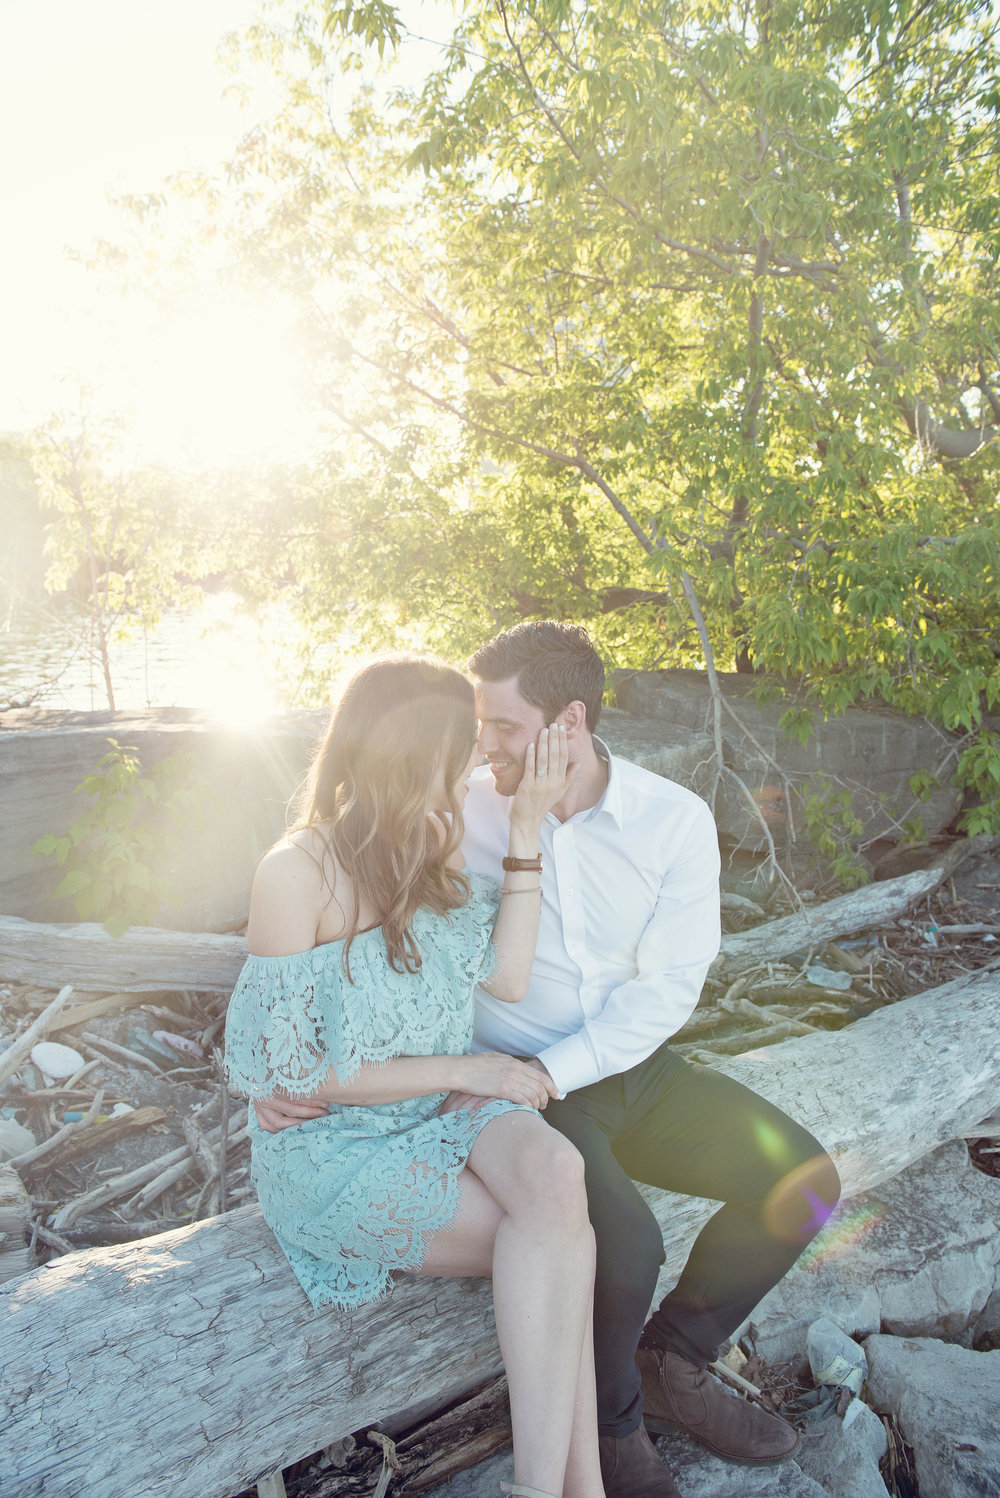 paula_ryan_engagement-36.jpg